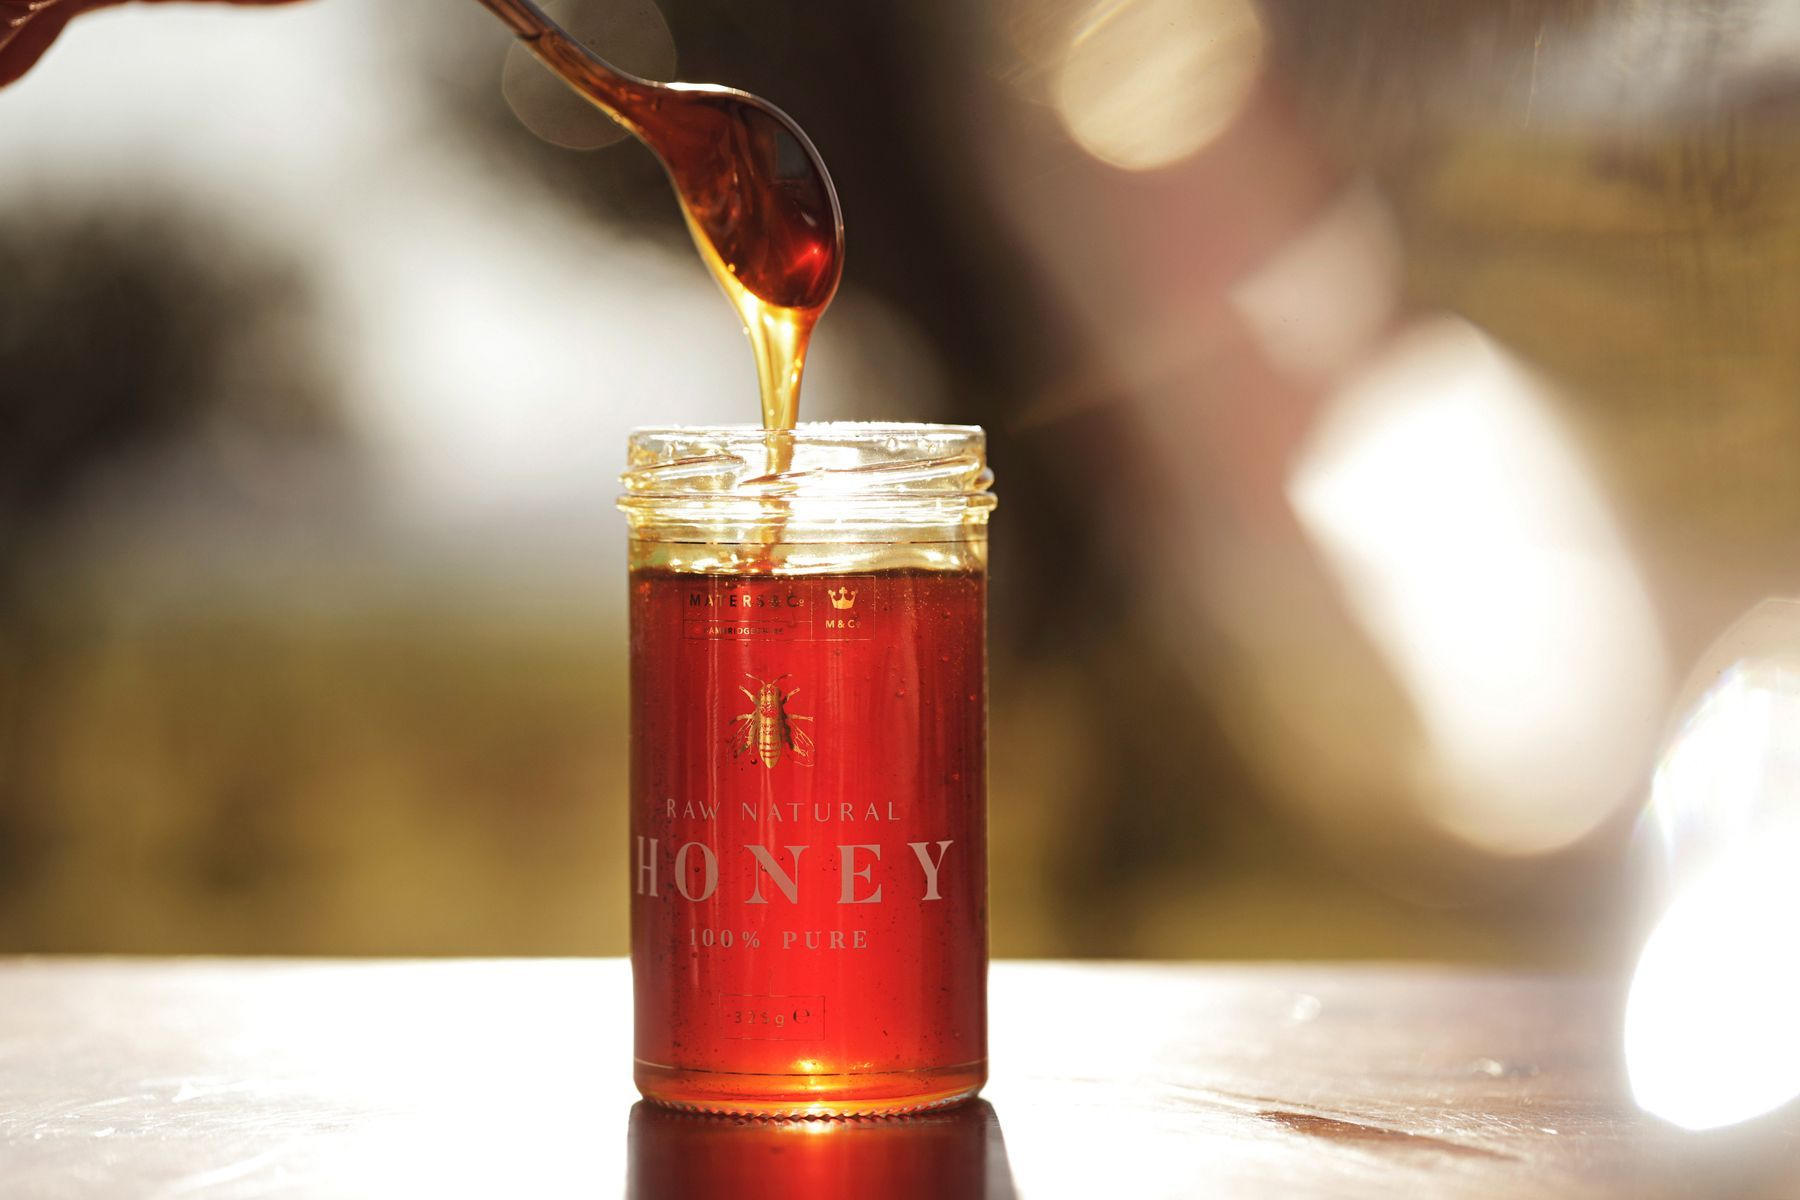 Maters & Co: Plastic-free, 100% Pure, & Natural Honey